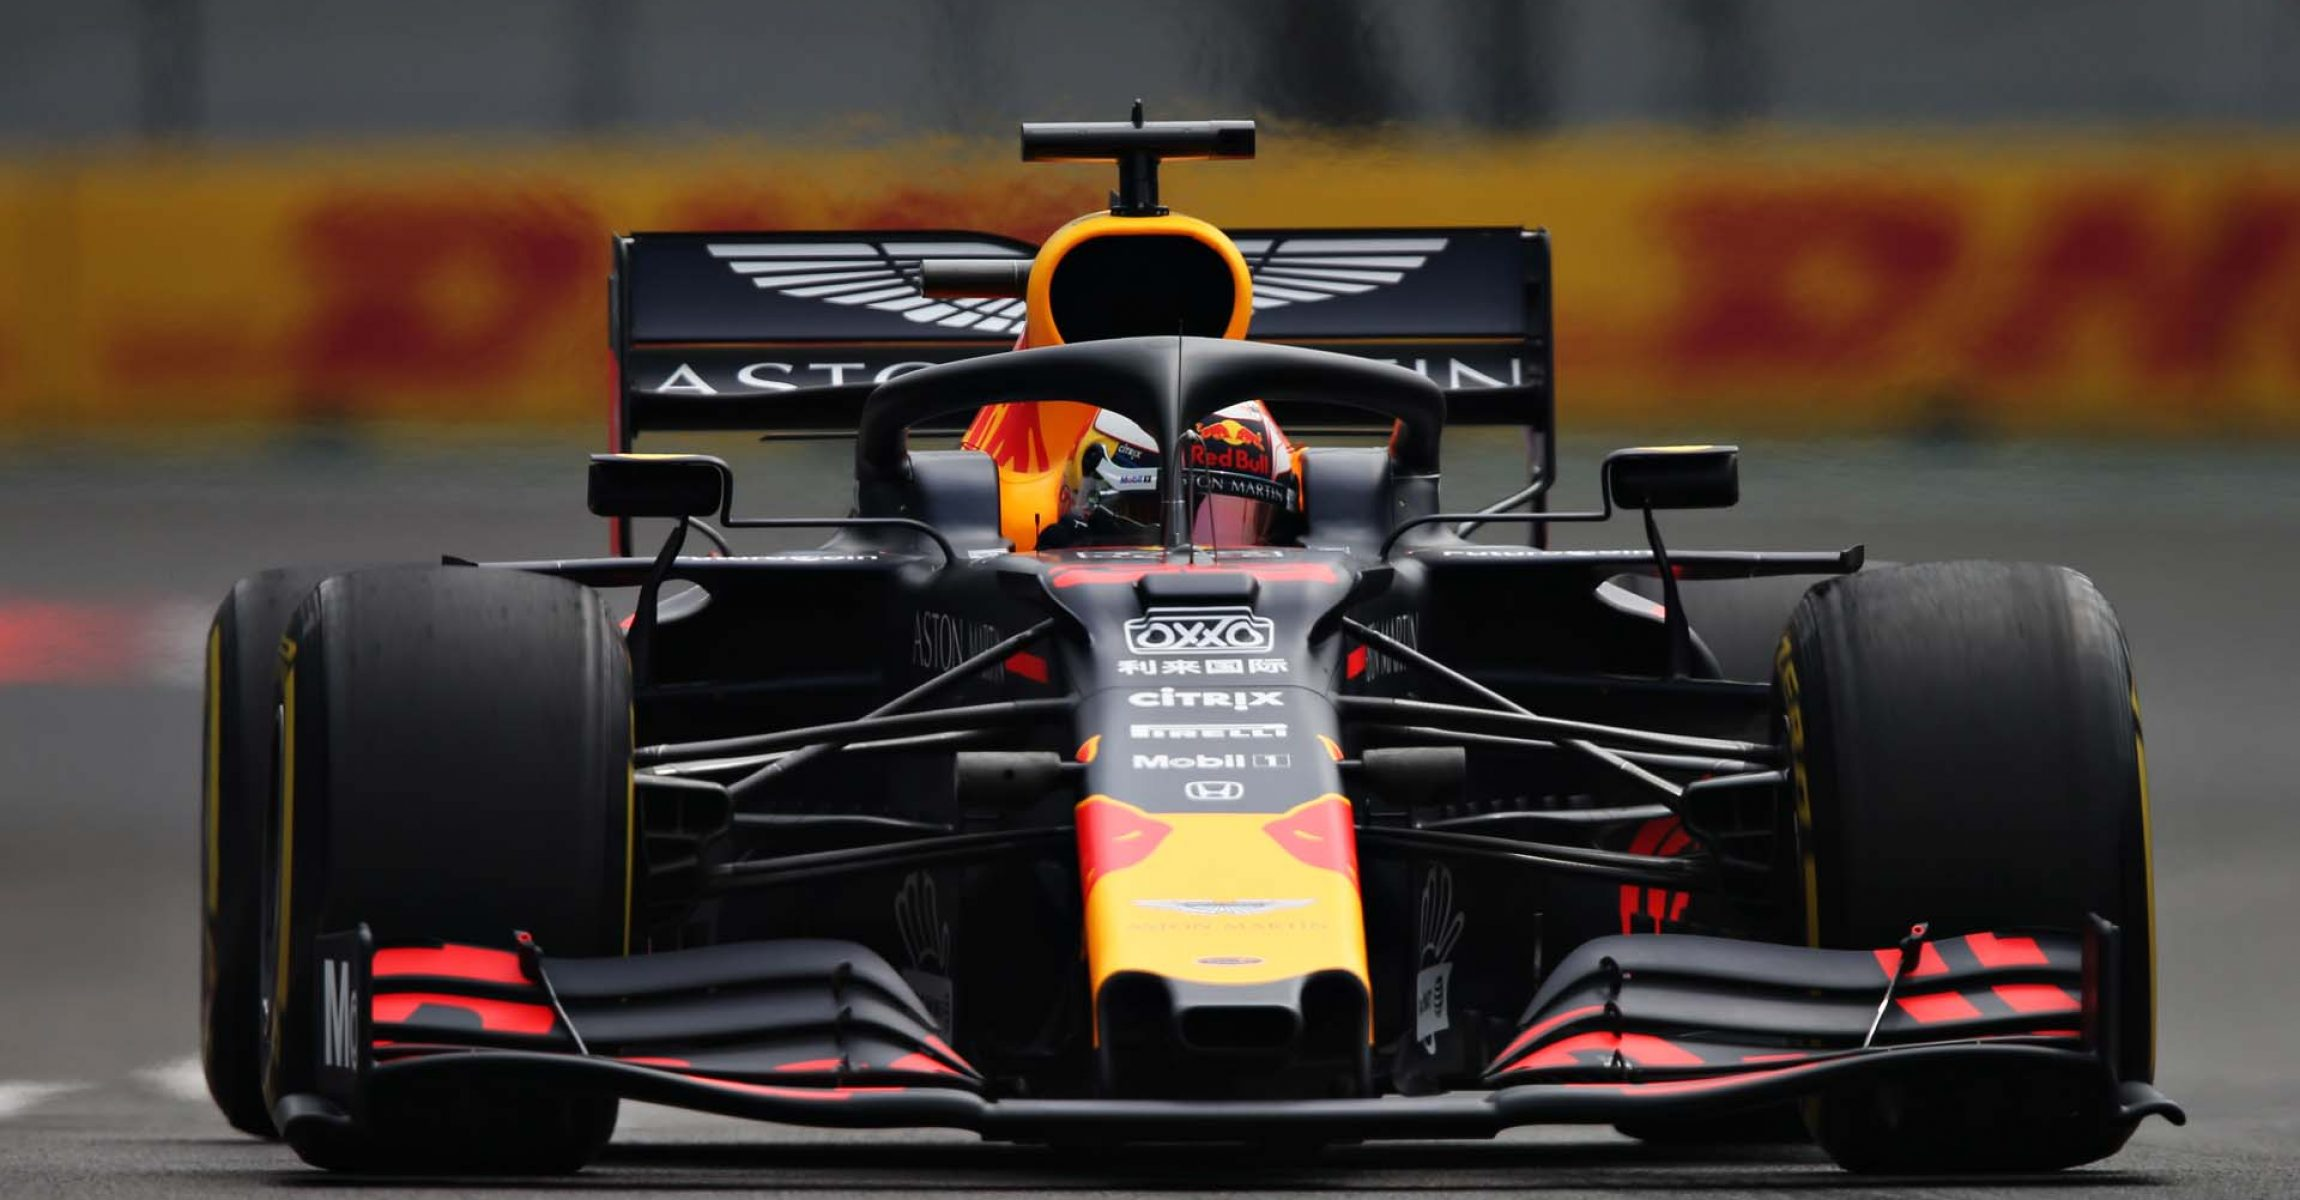 MEXICO CITY, MEXICO - OCTOBER 25: Max Verstappen of the Netherlands driving the (33) Aston Martin Red Bull Racing RB15 on track during practice for the F1 Grand Prix of Mexico at Autodromo Hermanos Rodriguez on October 25, 2019 in Mexico City, Mexico. (Photo by Charles Coates/Getty Images) // Getty Images / Red Bull Content Pool // AP-21Z28MDF51W11 // Usage for editorial use only //